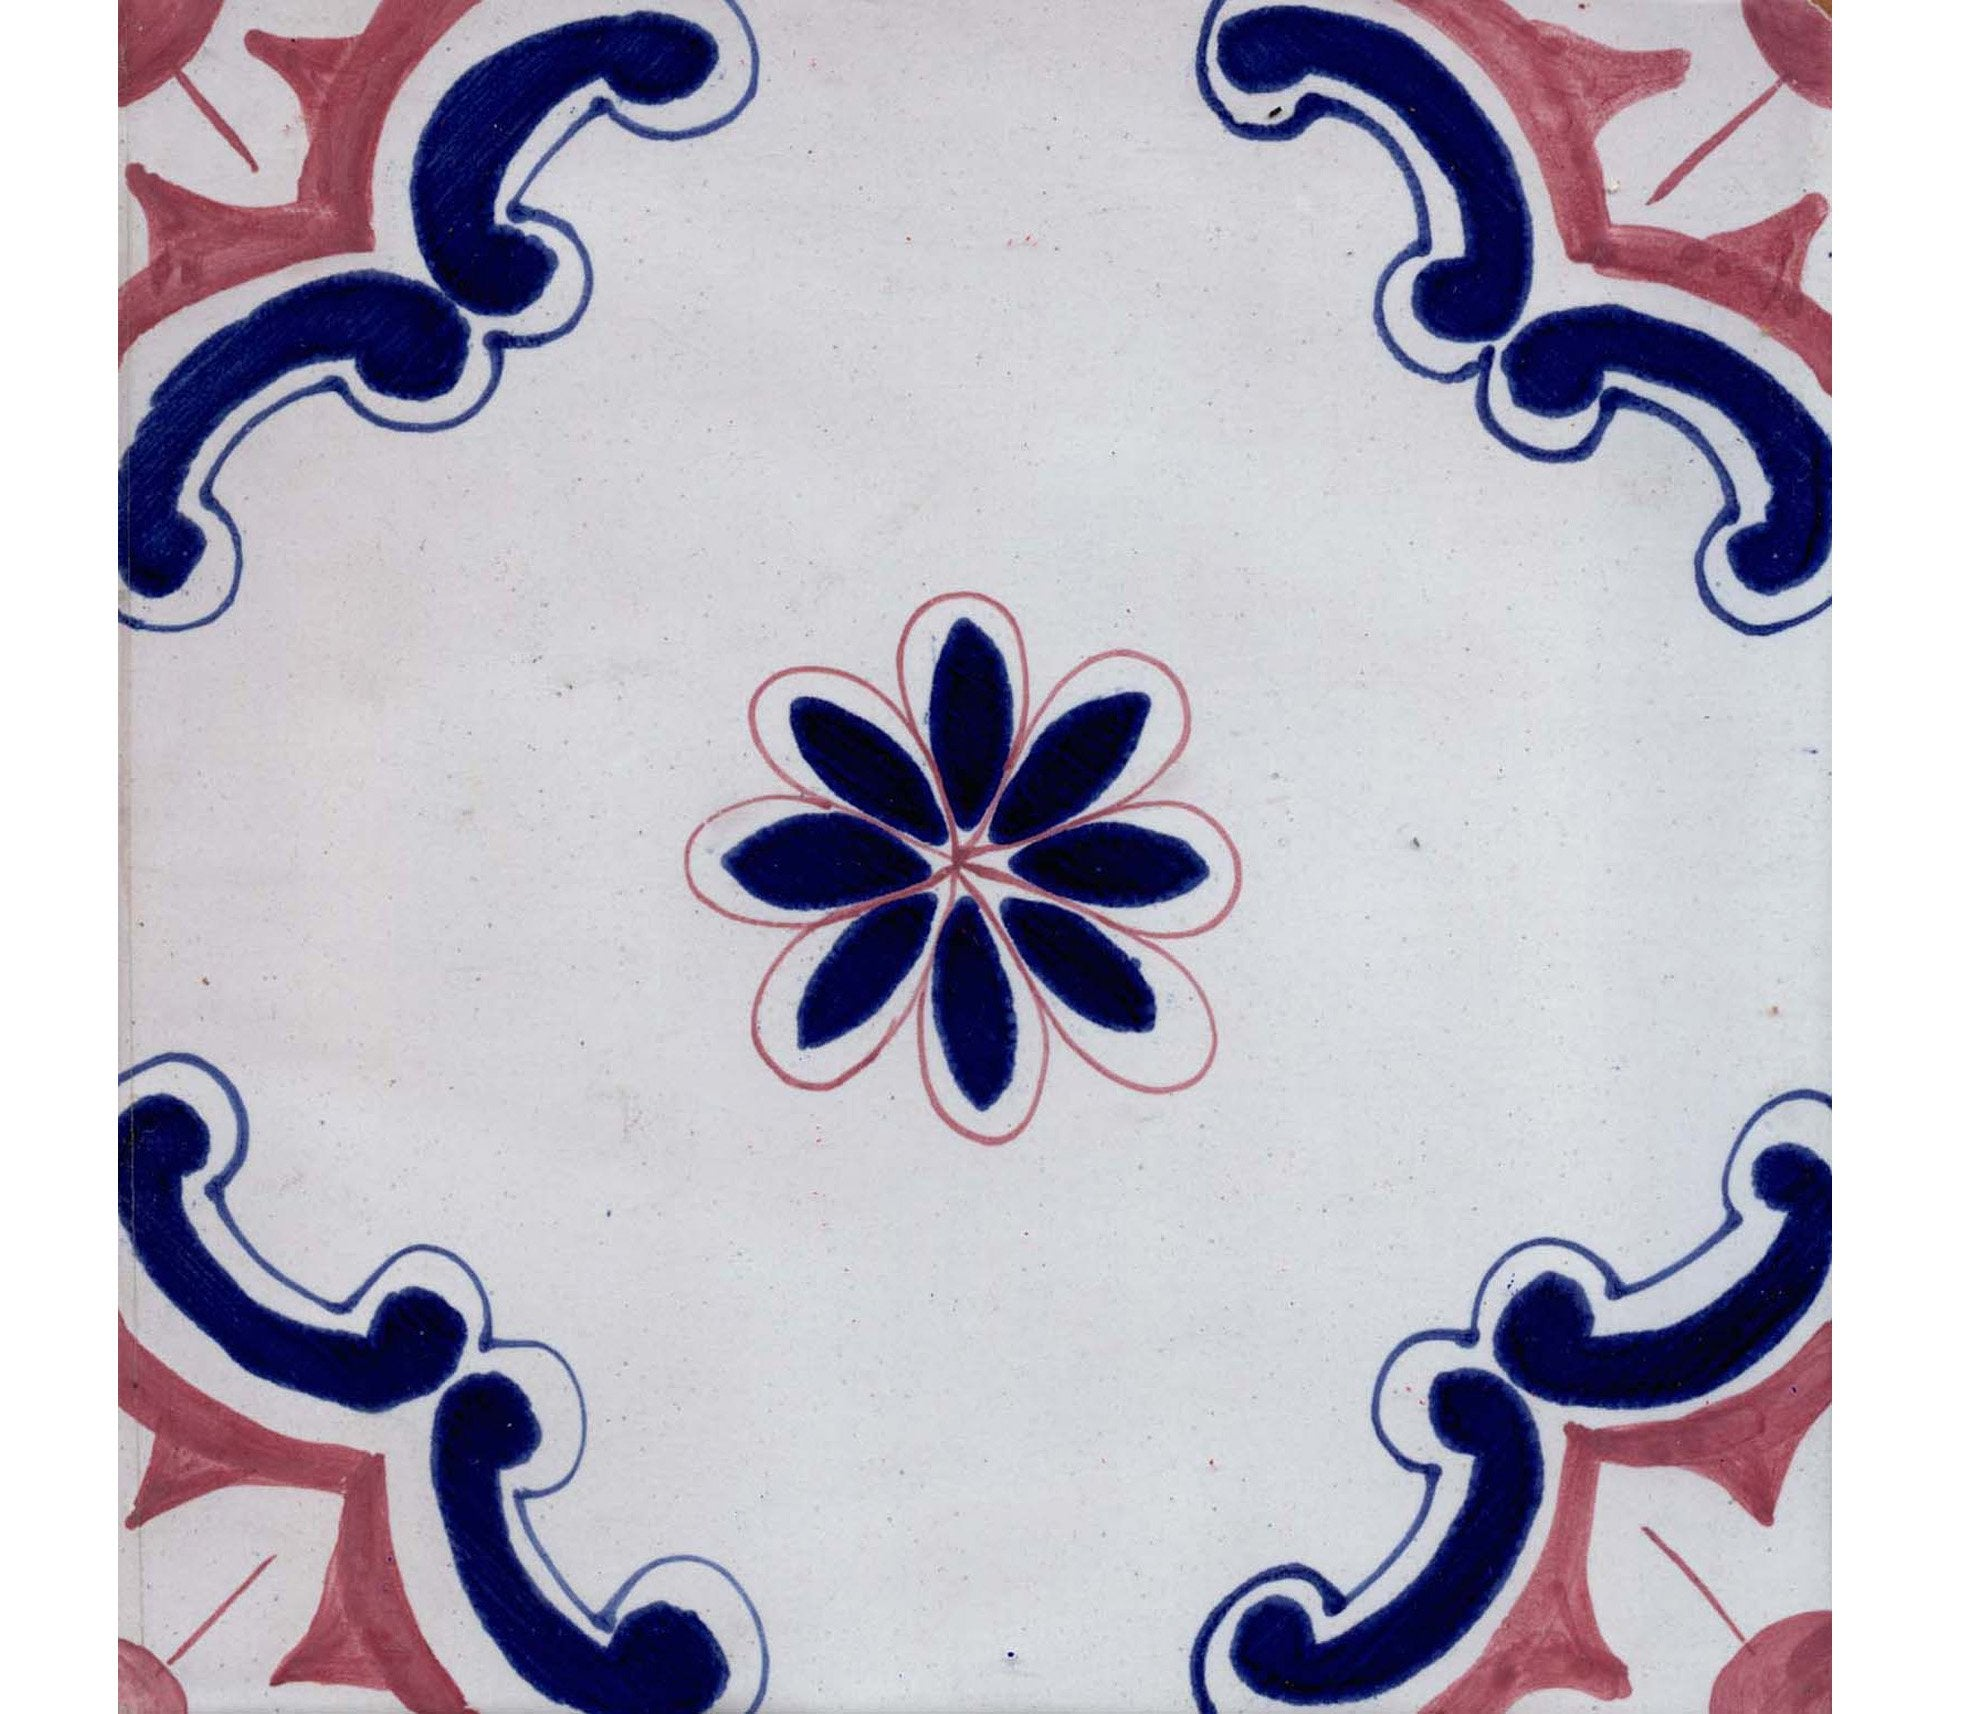 Series S Handpainted Tiles Product Image 40